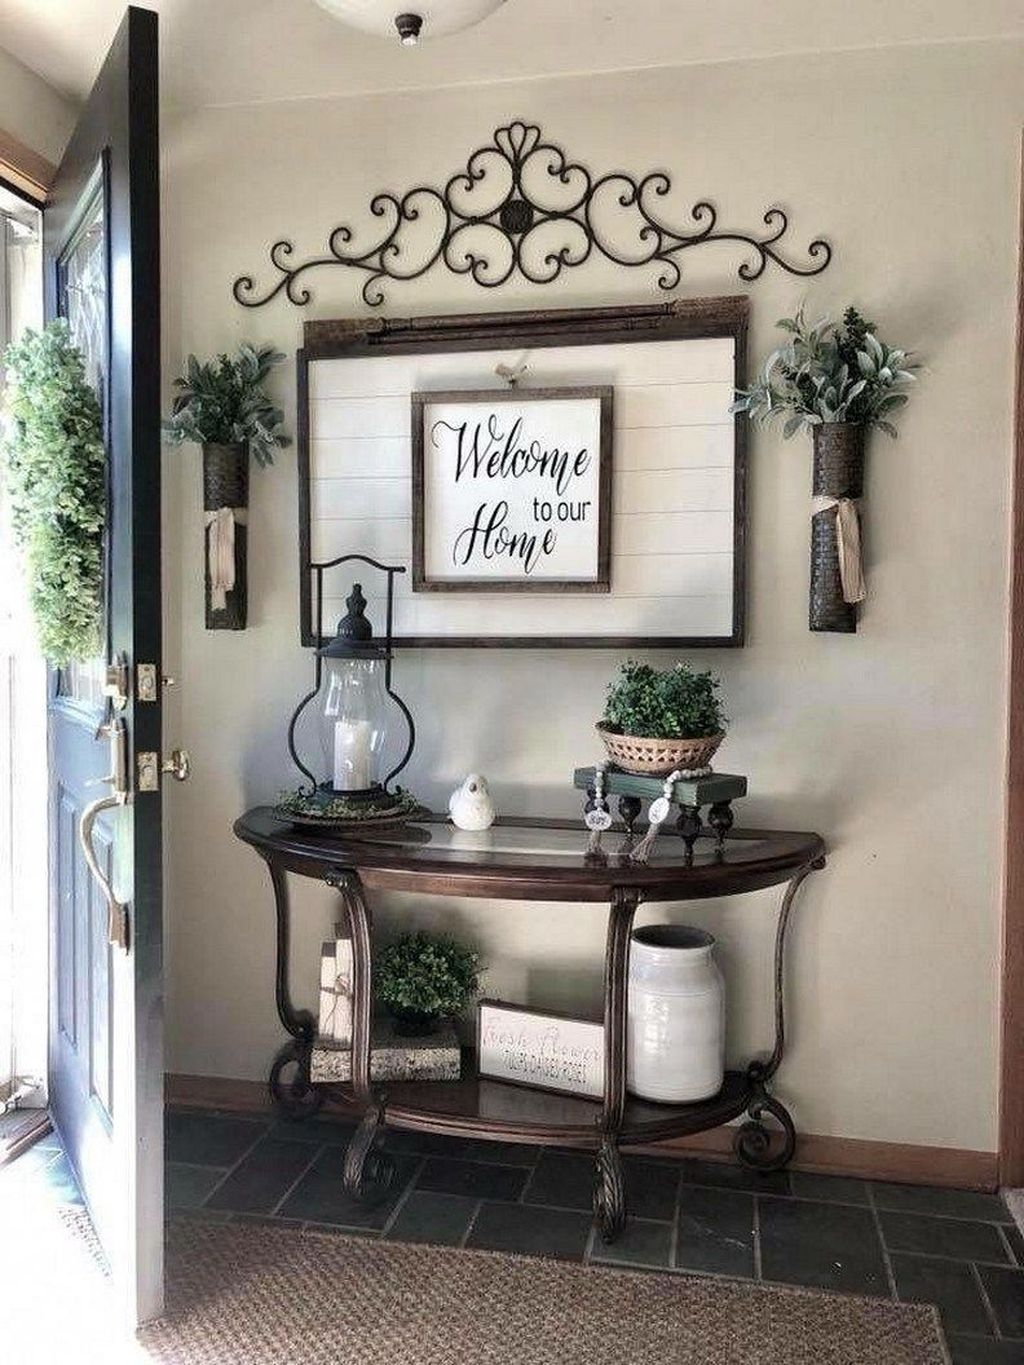 Inspiring DIY Farmhouse Home Decor Ideas 03